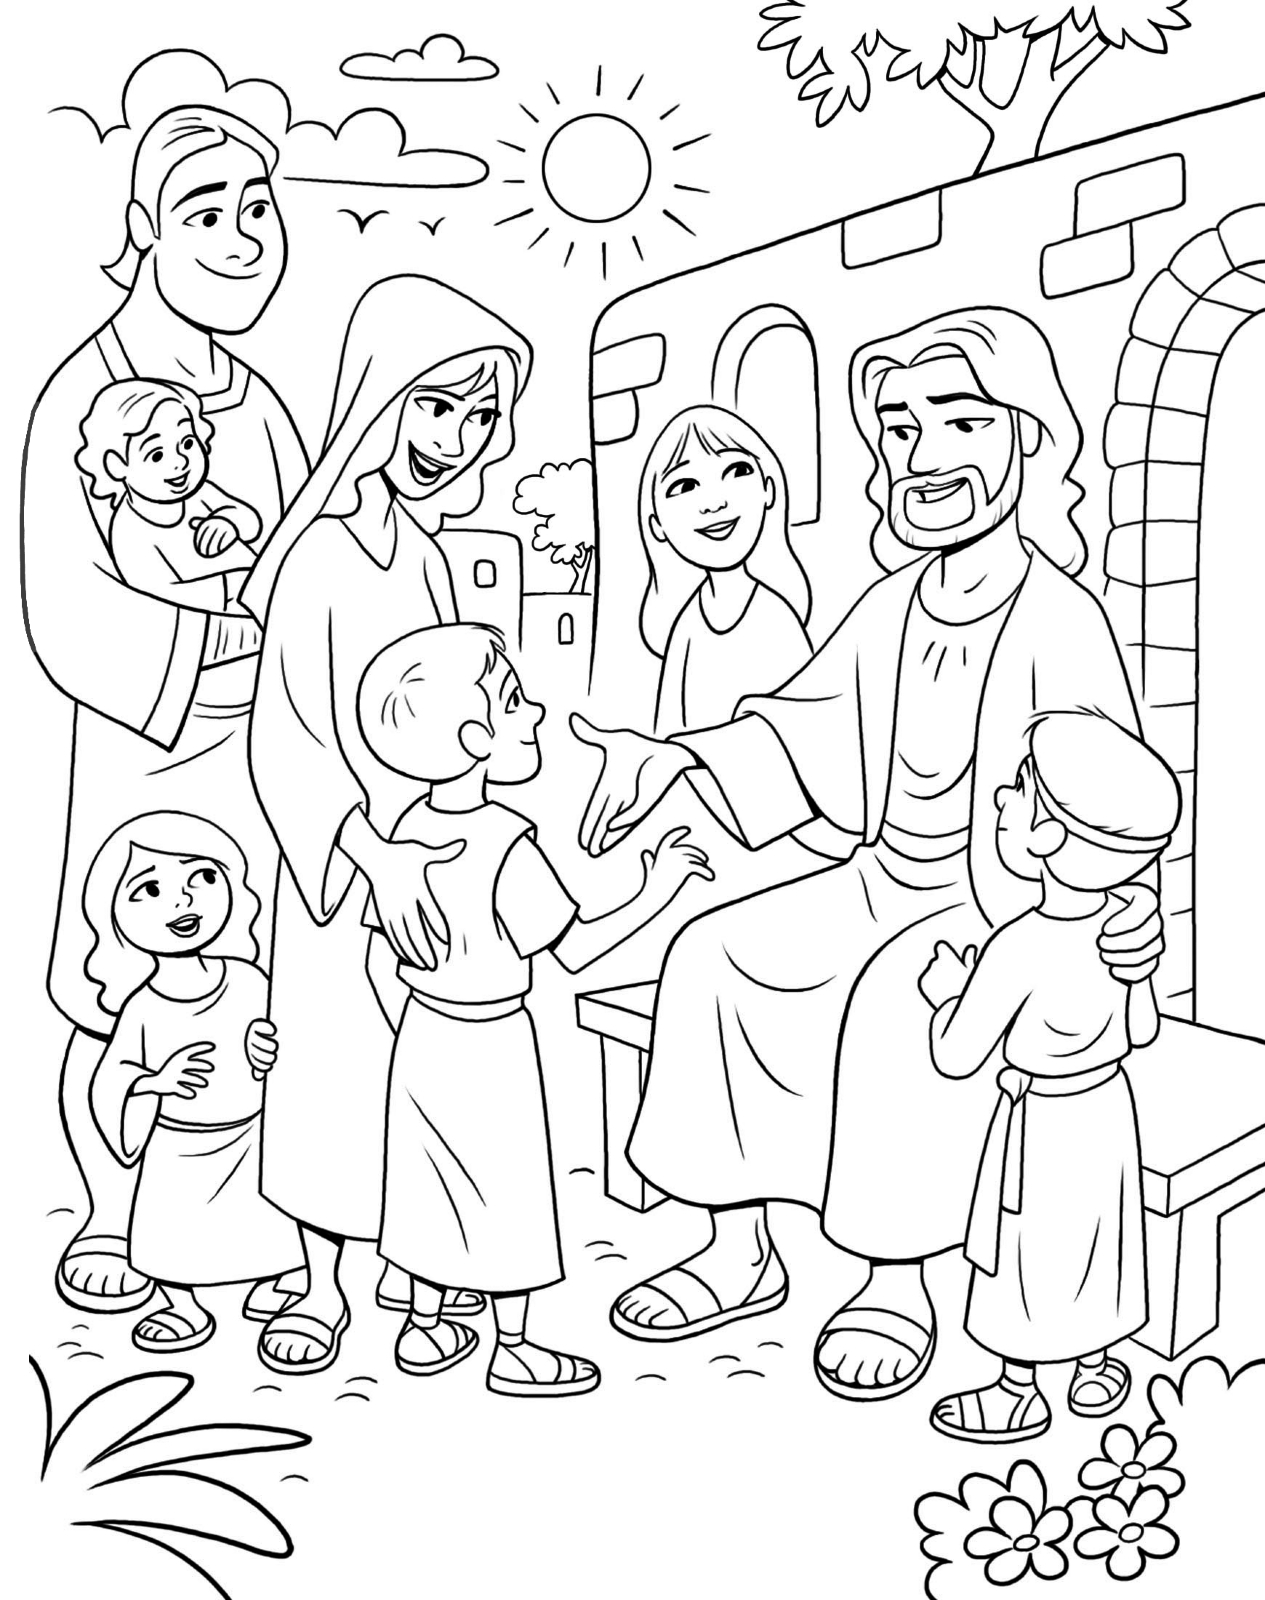 coloring pages for kids jesus christ meeting the children coloring jesus kids for pages